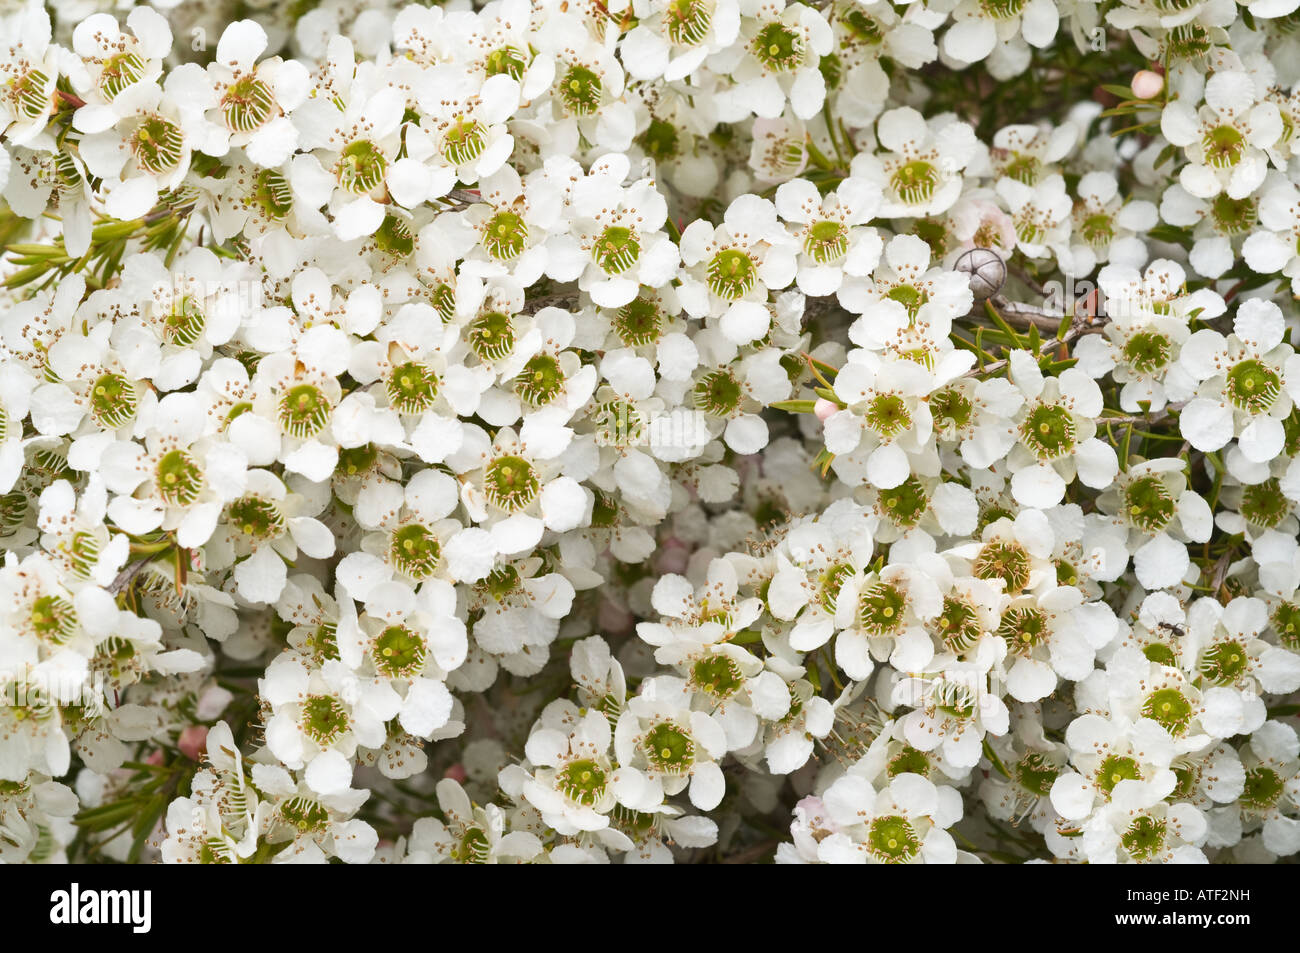 White Wax Flowers Stock Photos White Wax Flowers Stock Images Alamy